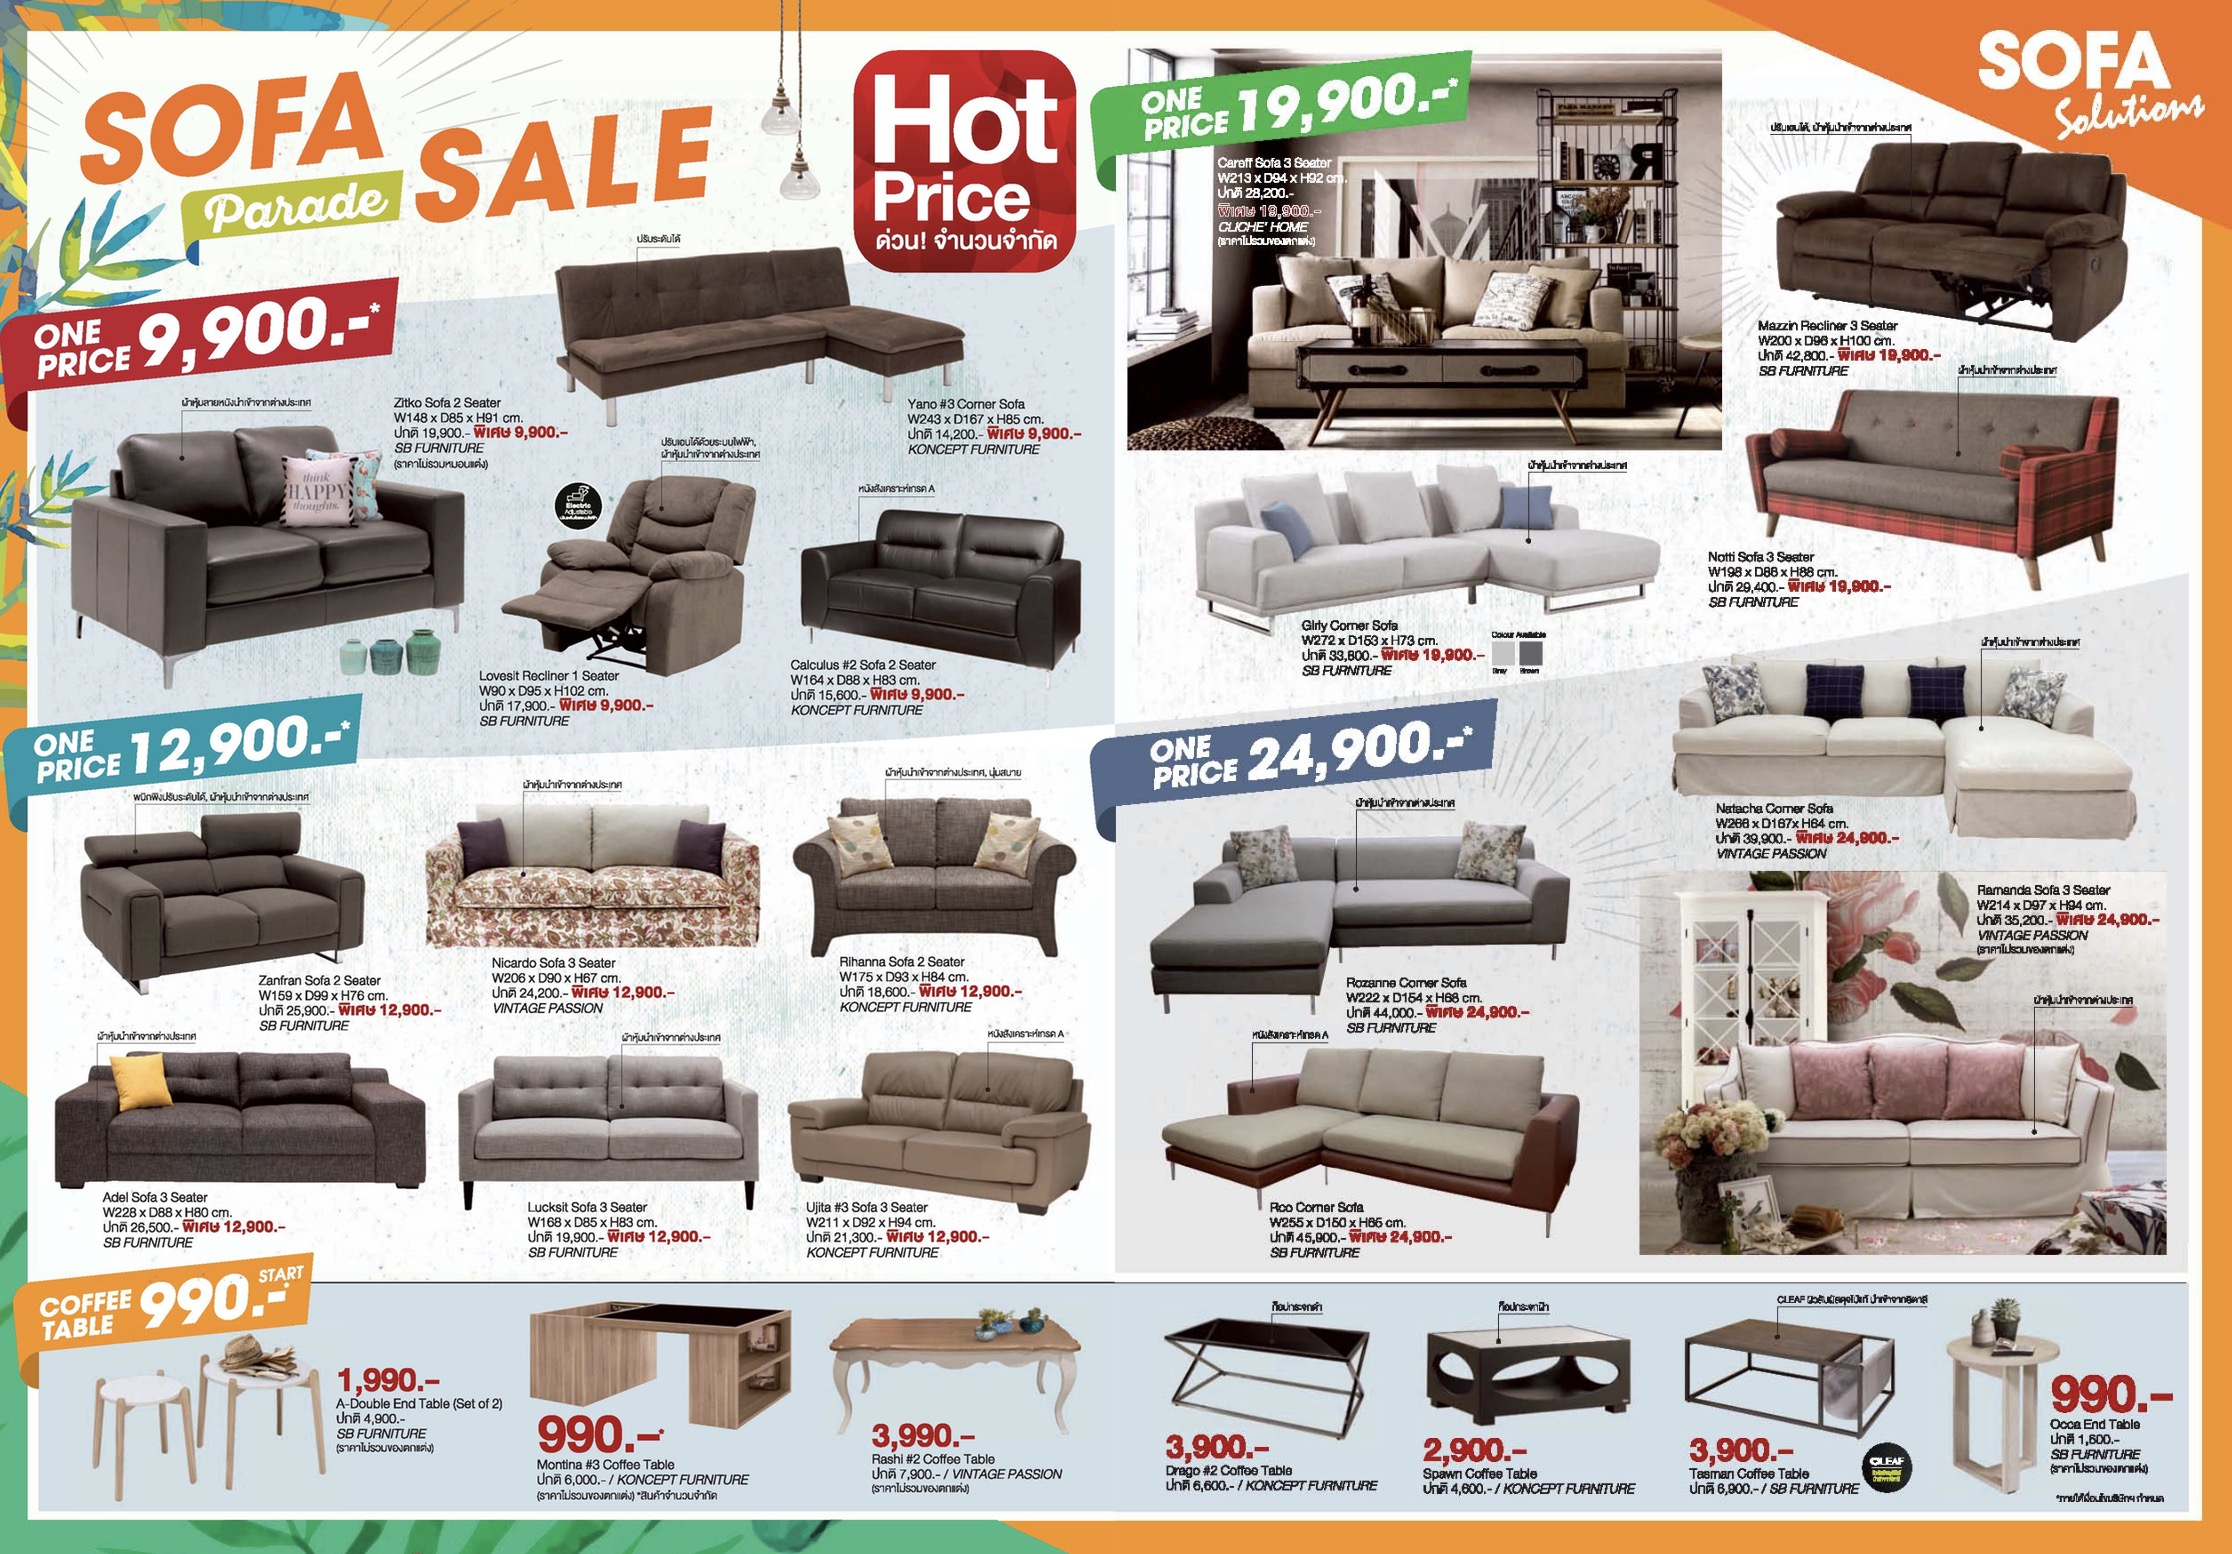 sb design square sofa bed one person quotsofa parade sale quot 1 ม ค 30 เม ย 60